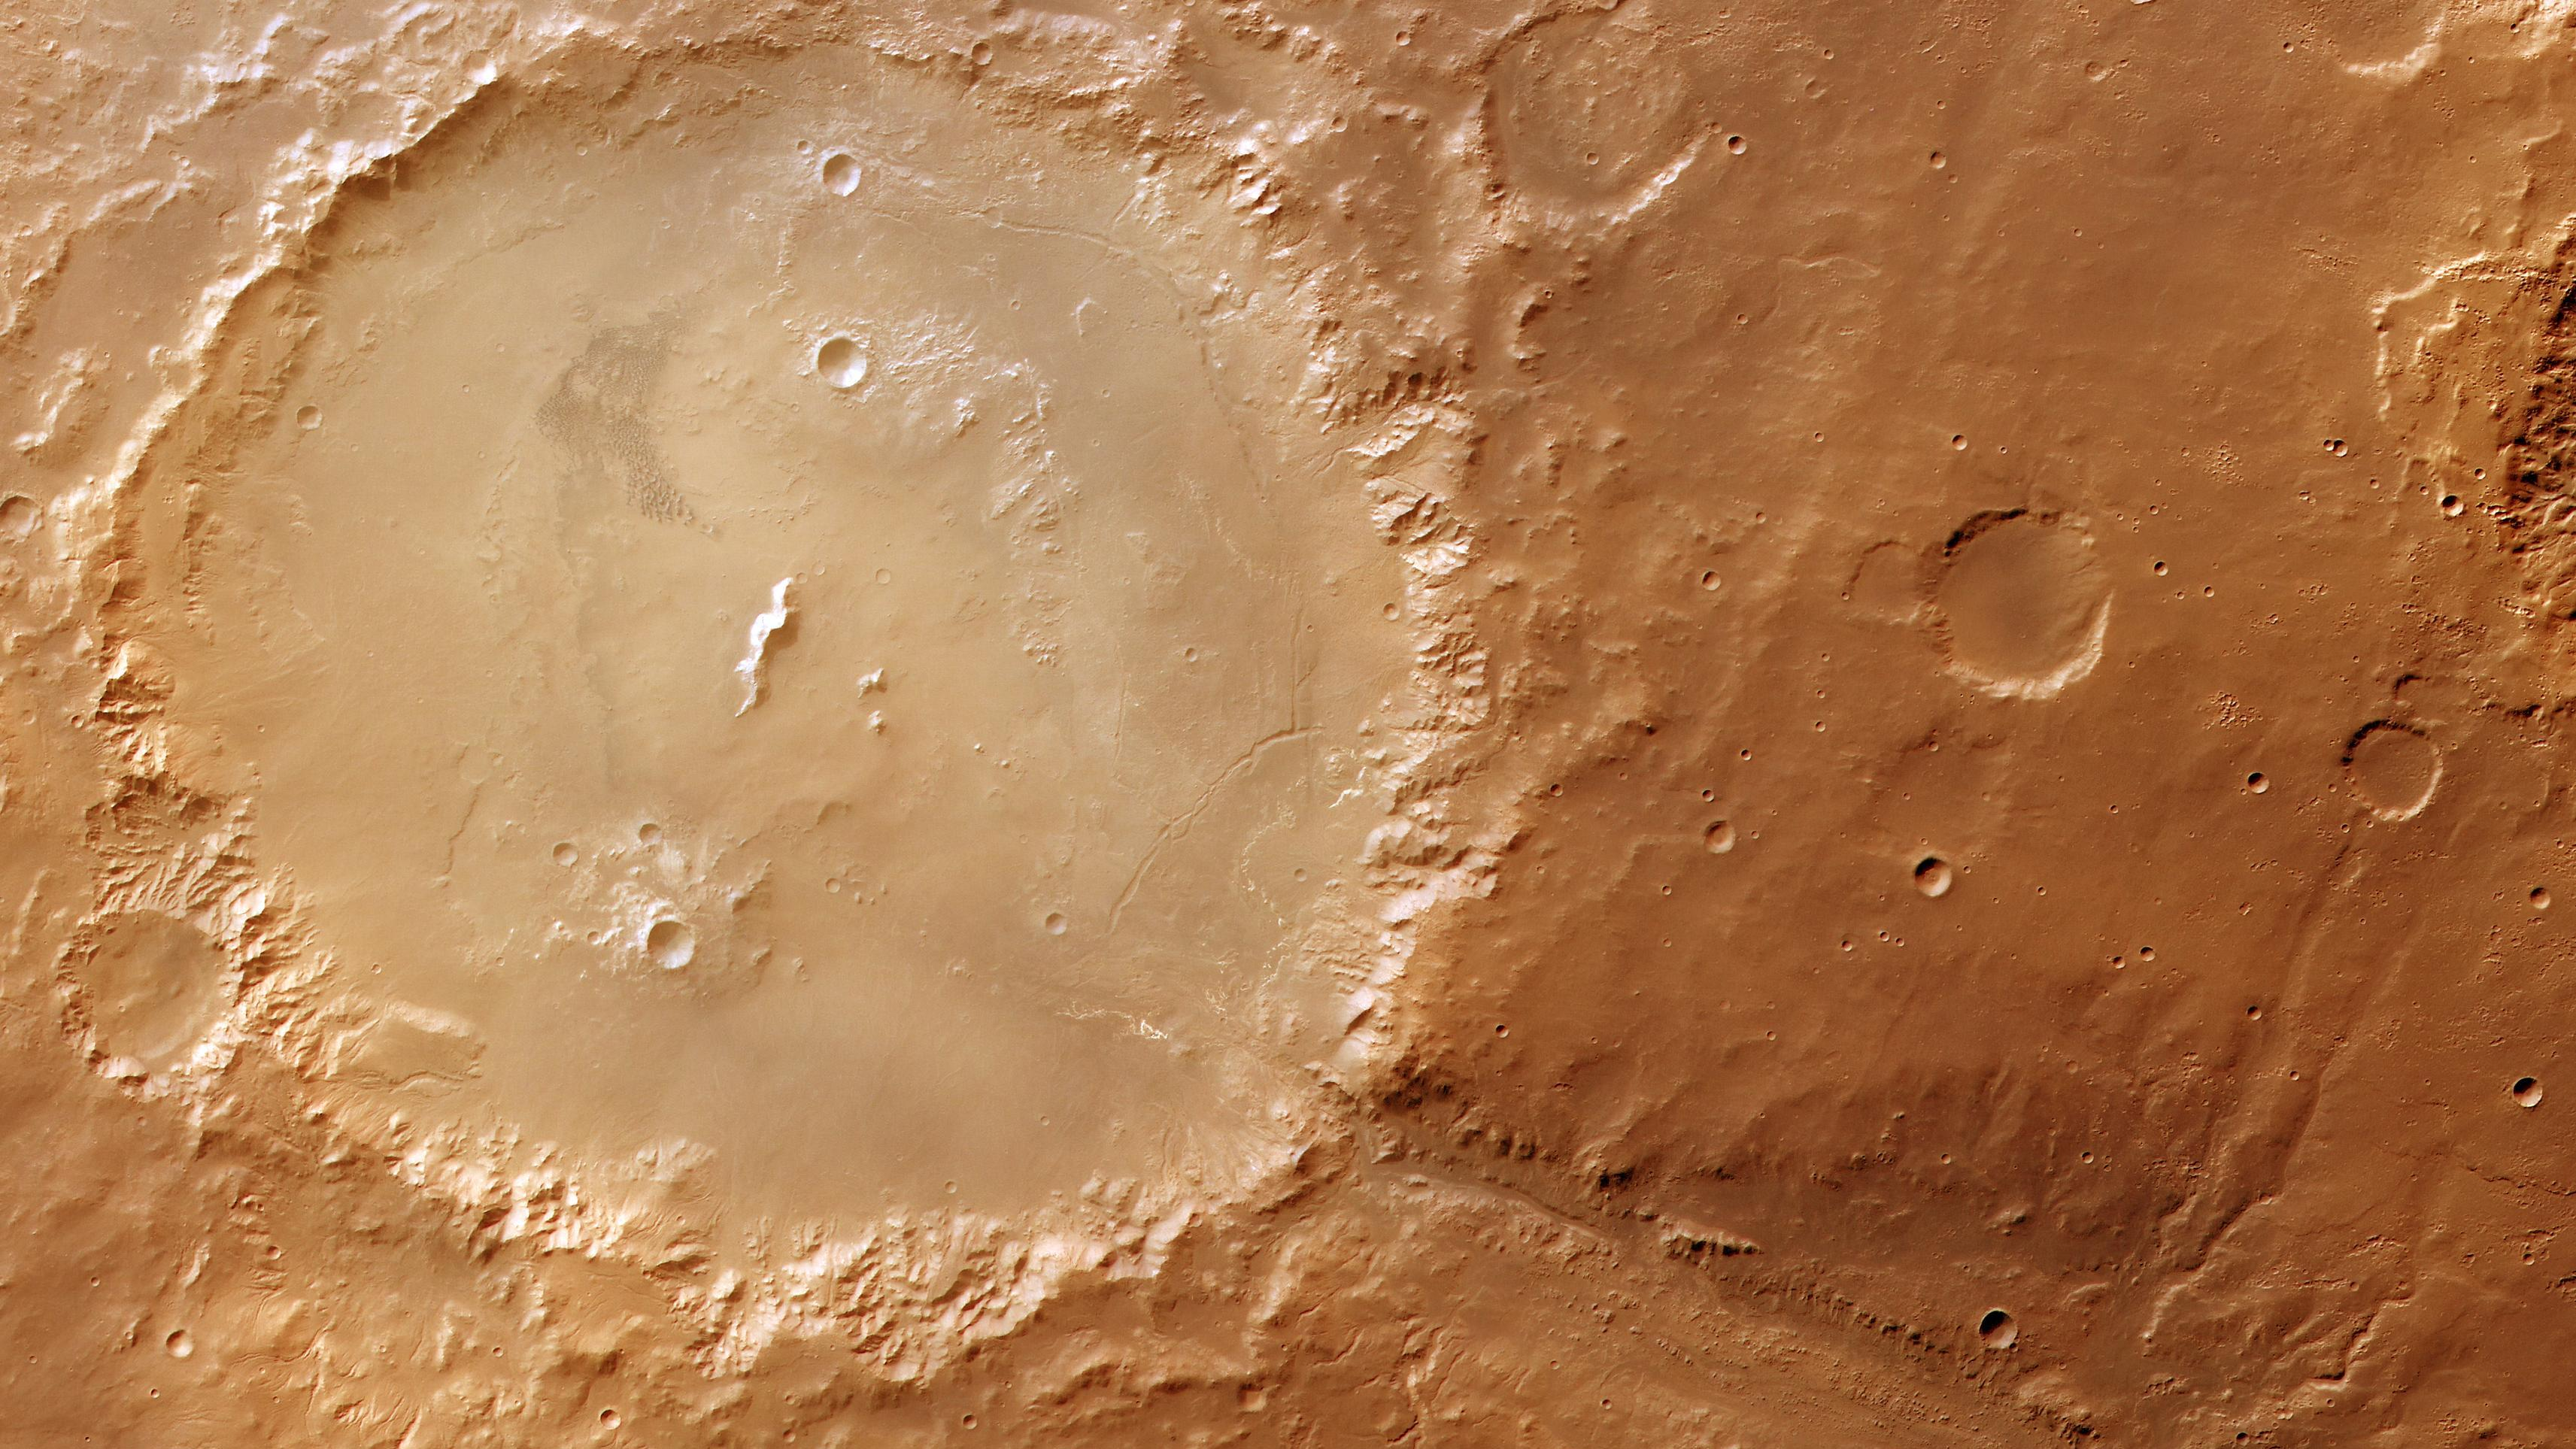 Mars Surface Hd (page 2) - Pics about space